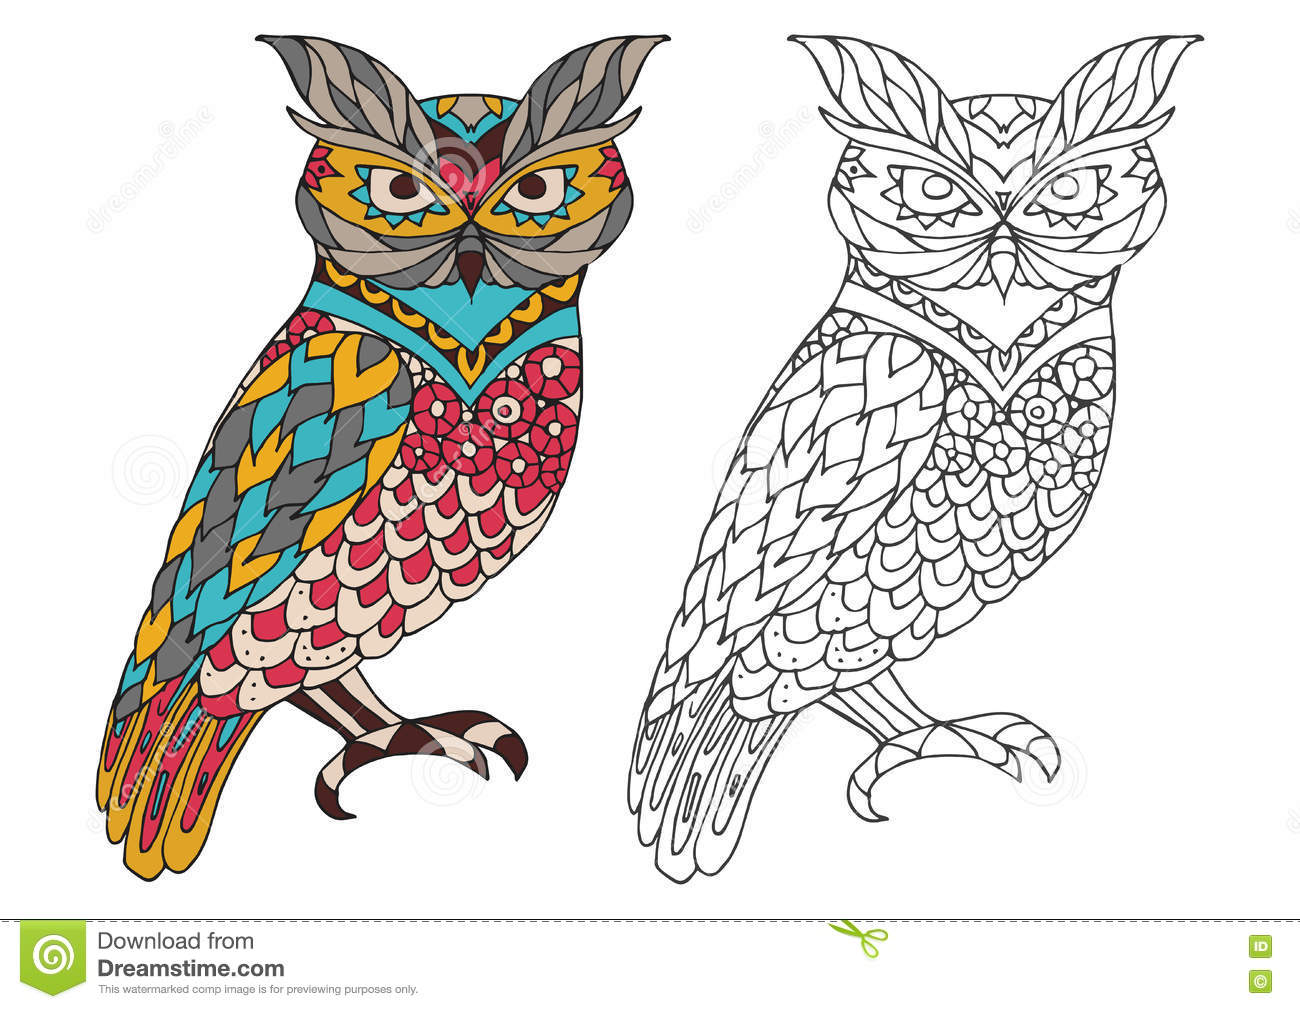 Printable Coloring Book Page For Adults Owl Design Activity To